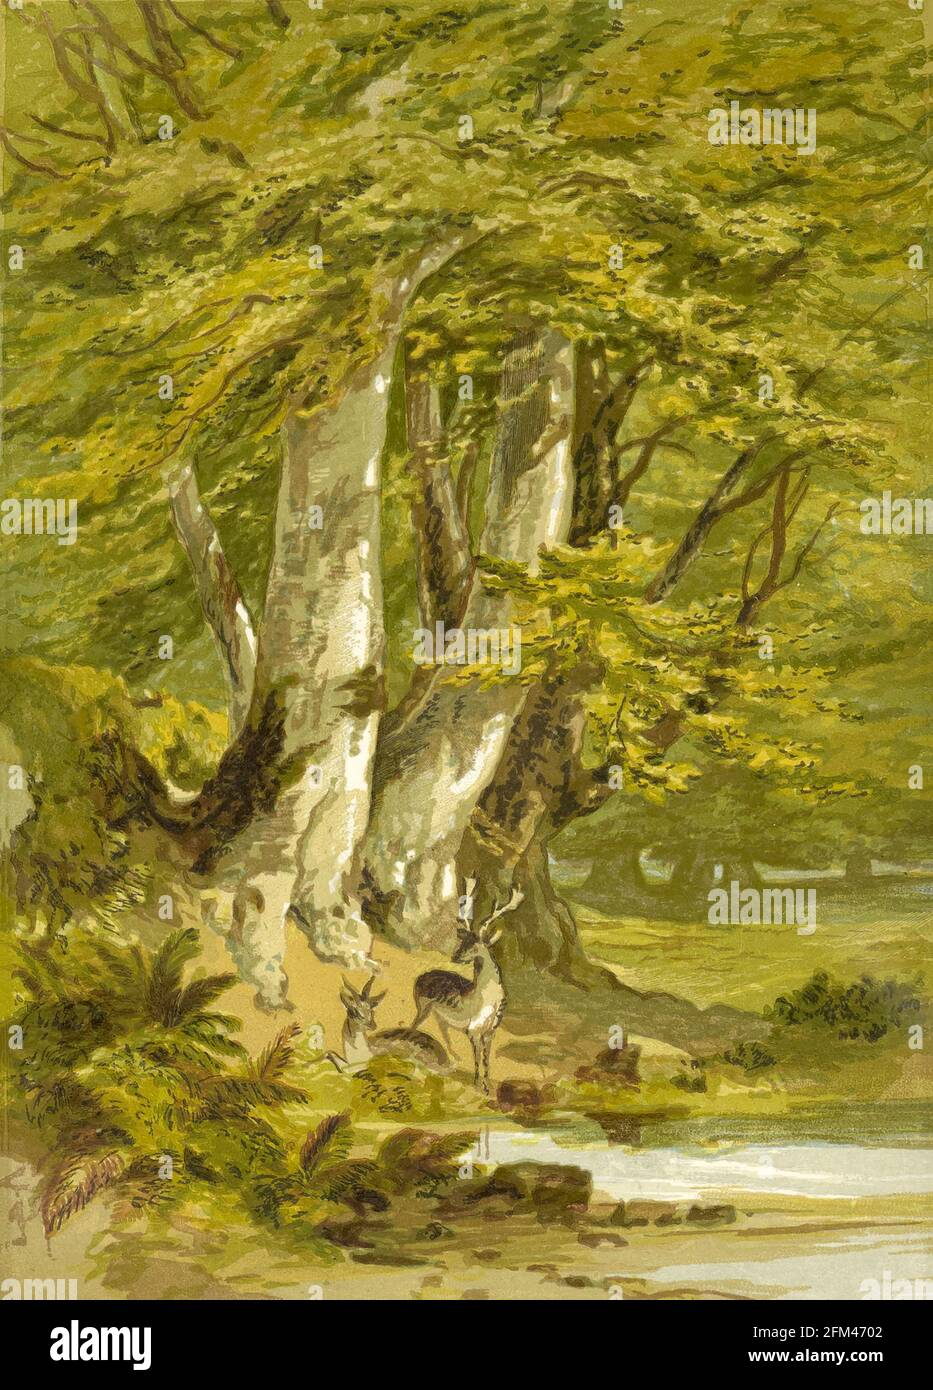 Beech trees from the book  The theory and practice of landscape painting in water-colours illustrated by a series of twenty-six drawings and diagrams in colours and numerous woodcuts by Barnard, George, 1807-1890 Published in 1885 by George Routledge and Sons London Stock Photo